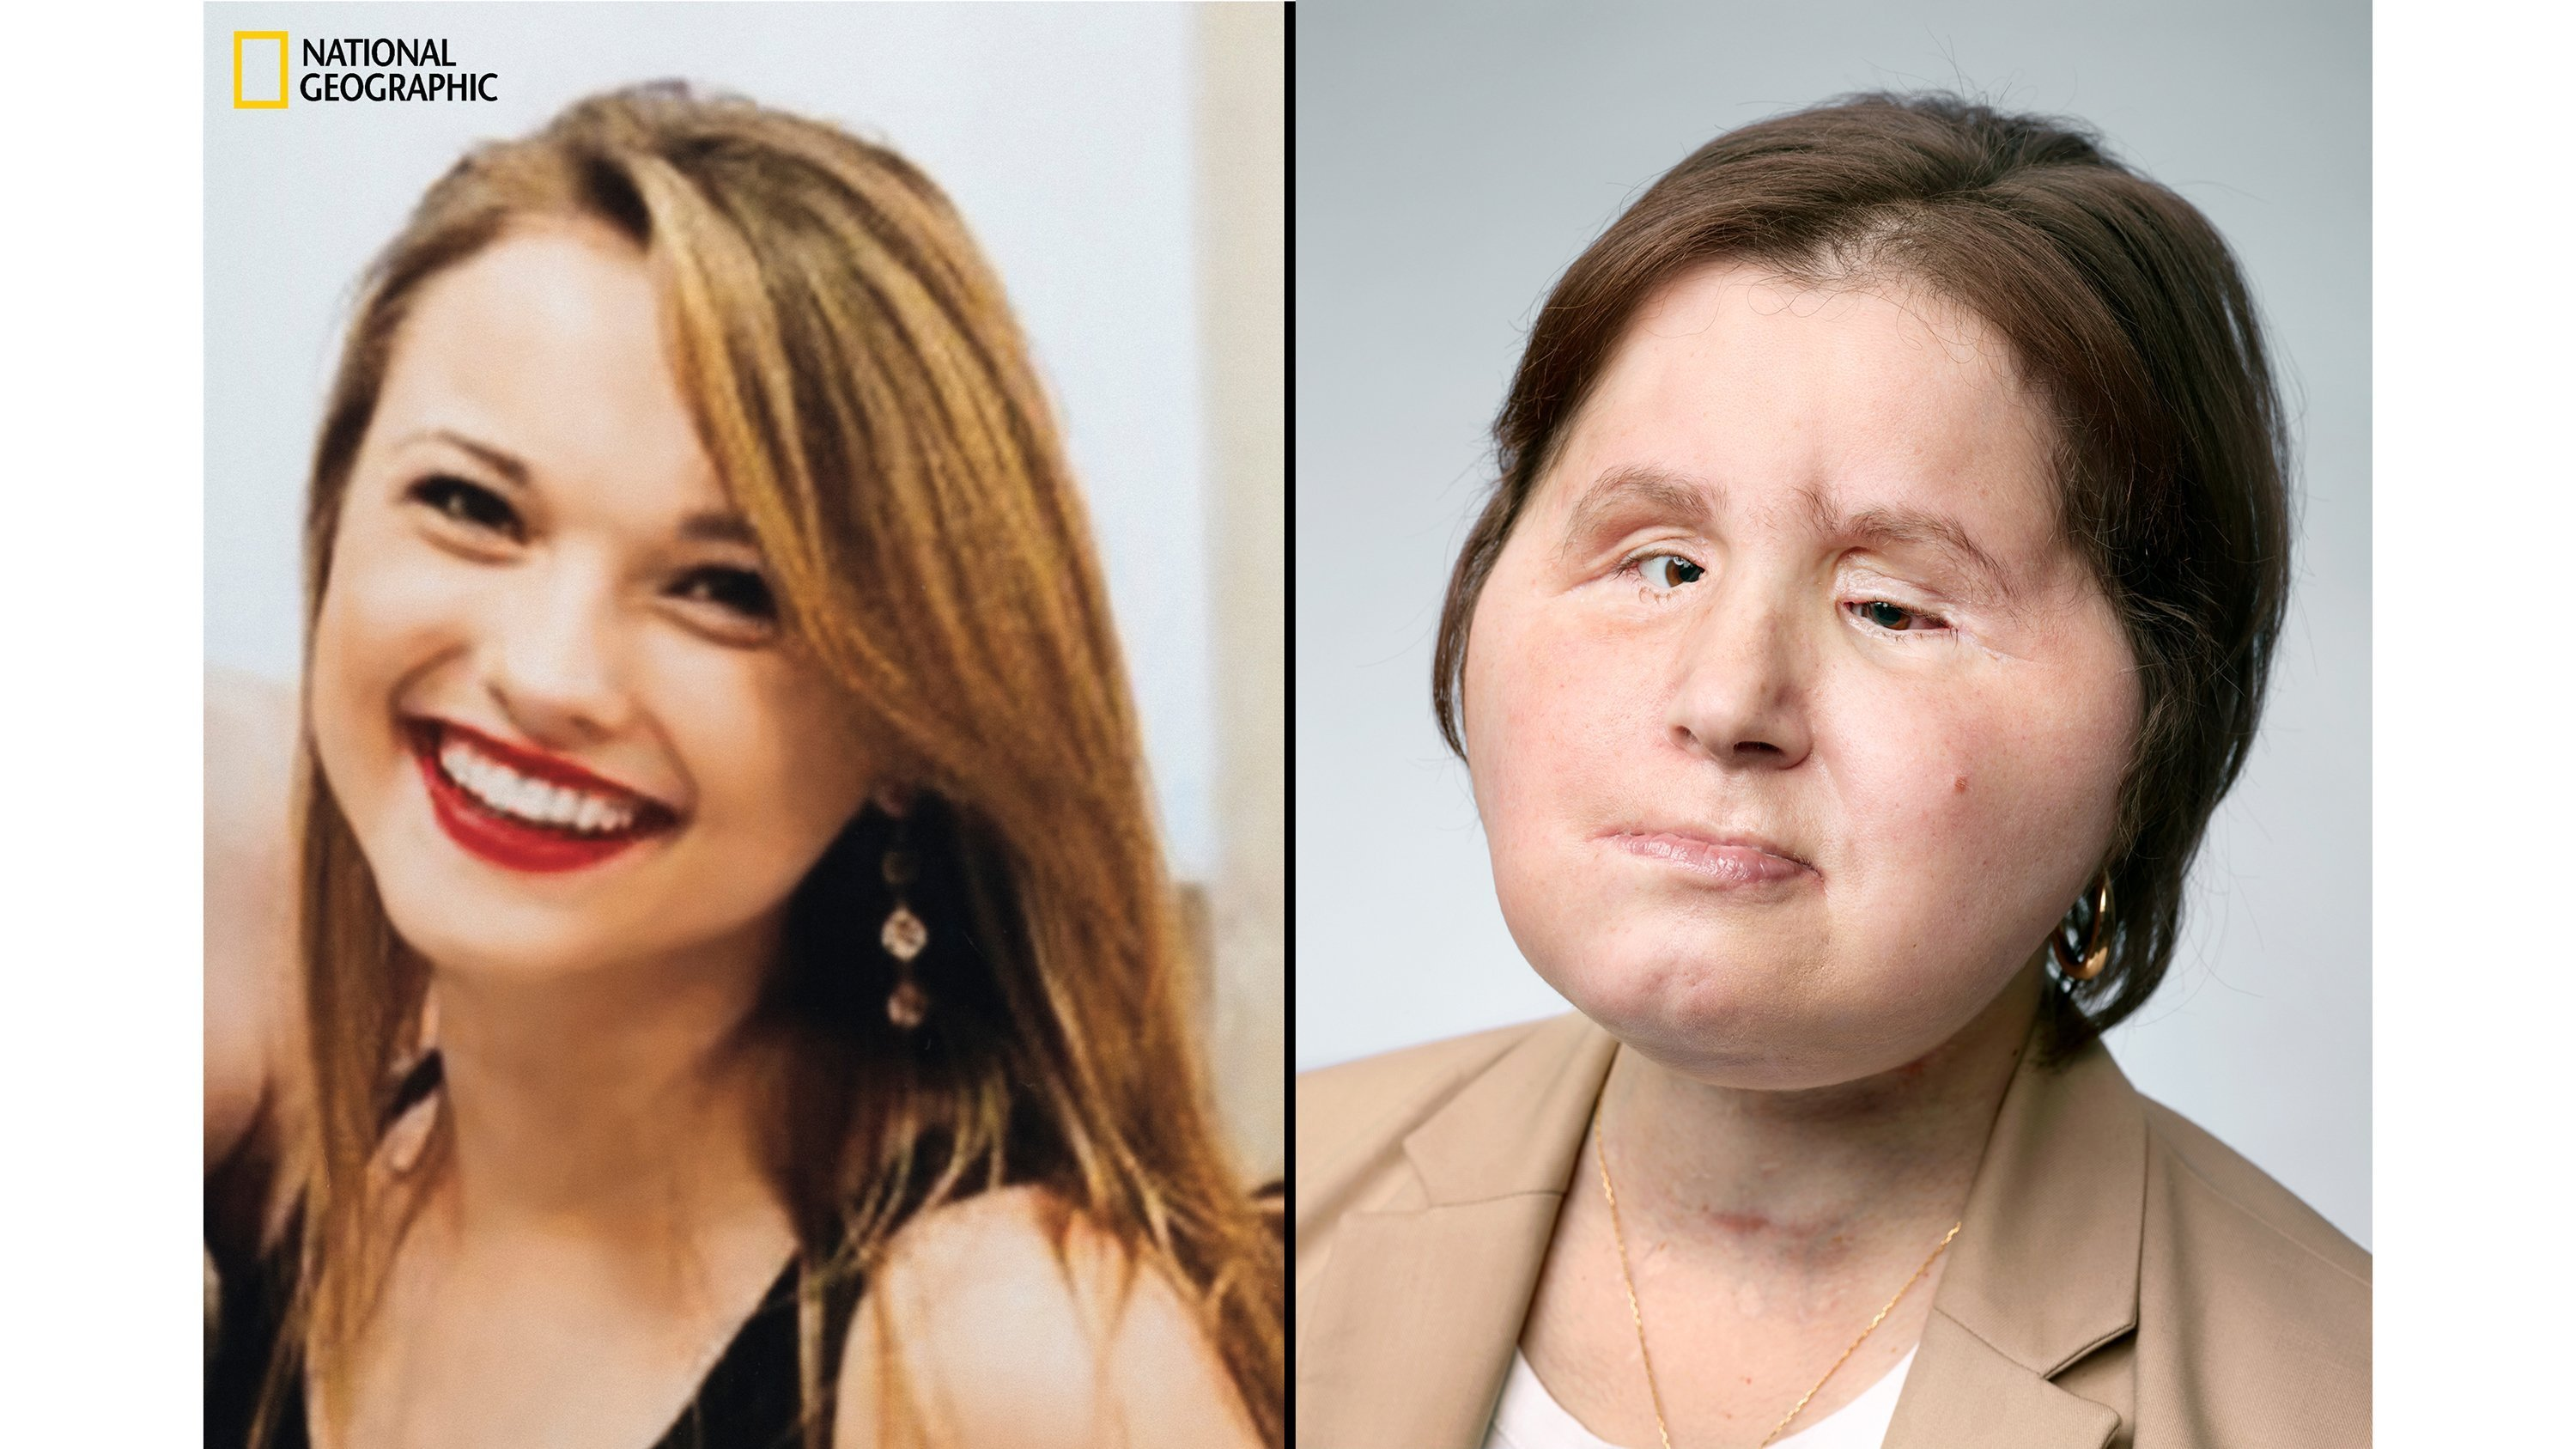 21-year-old woman becomes youngest in United States  to receive face transplant